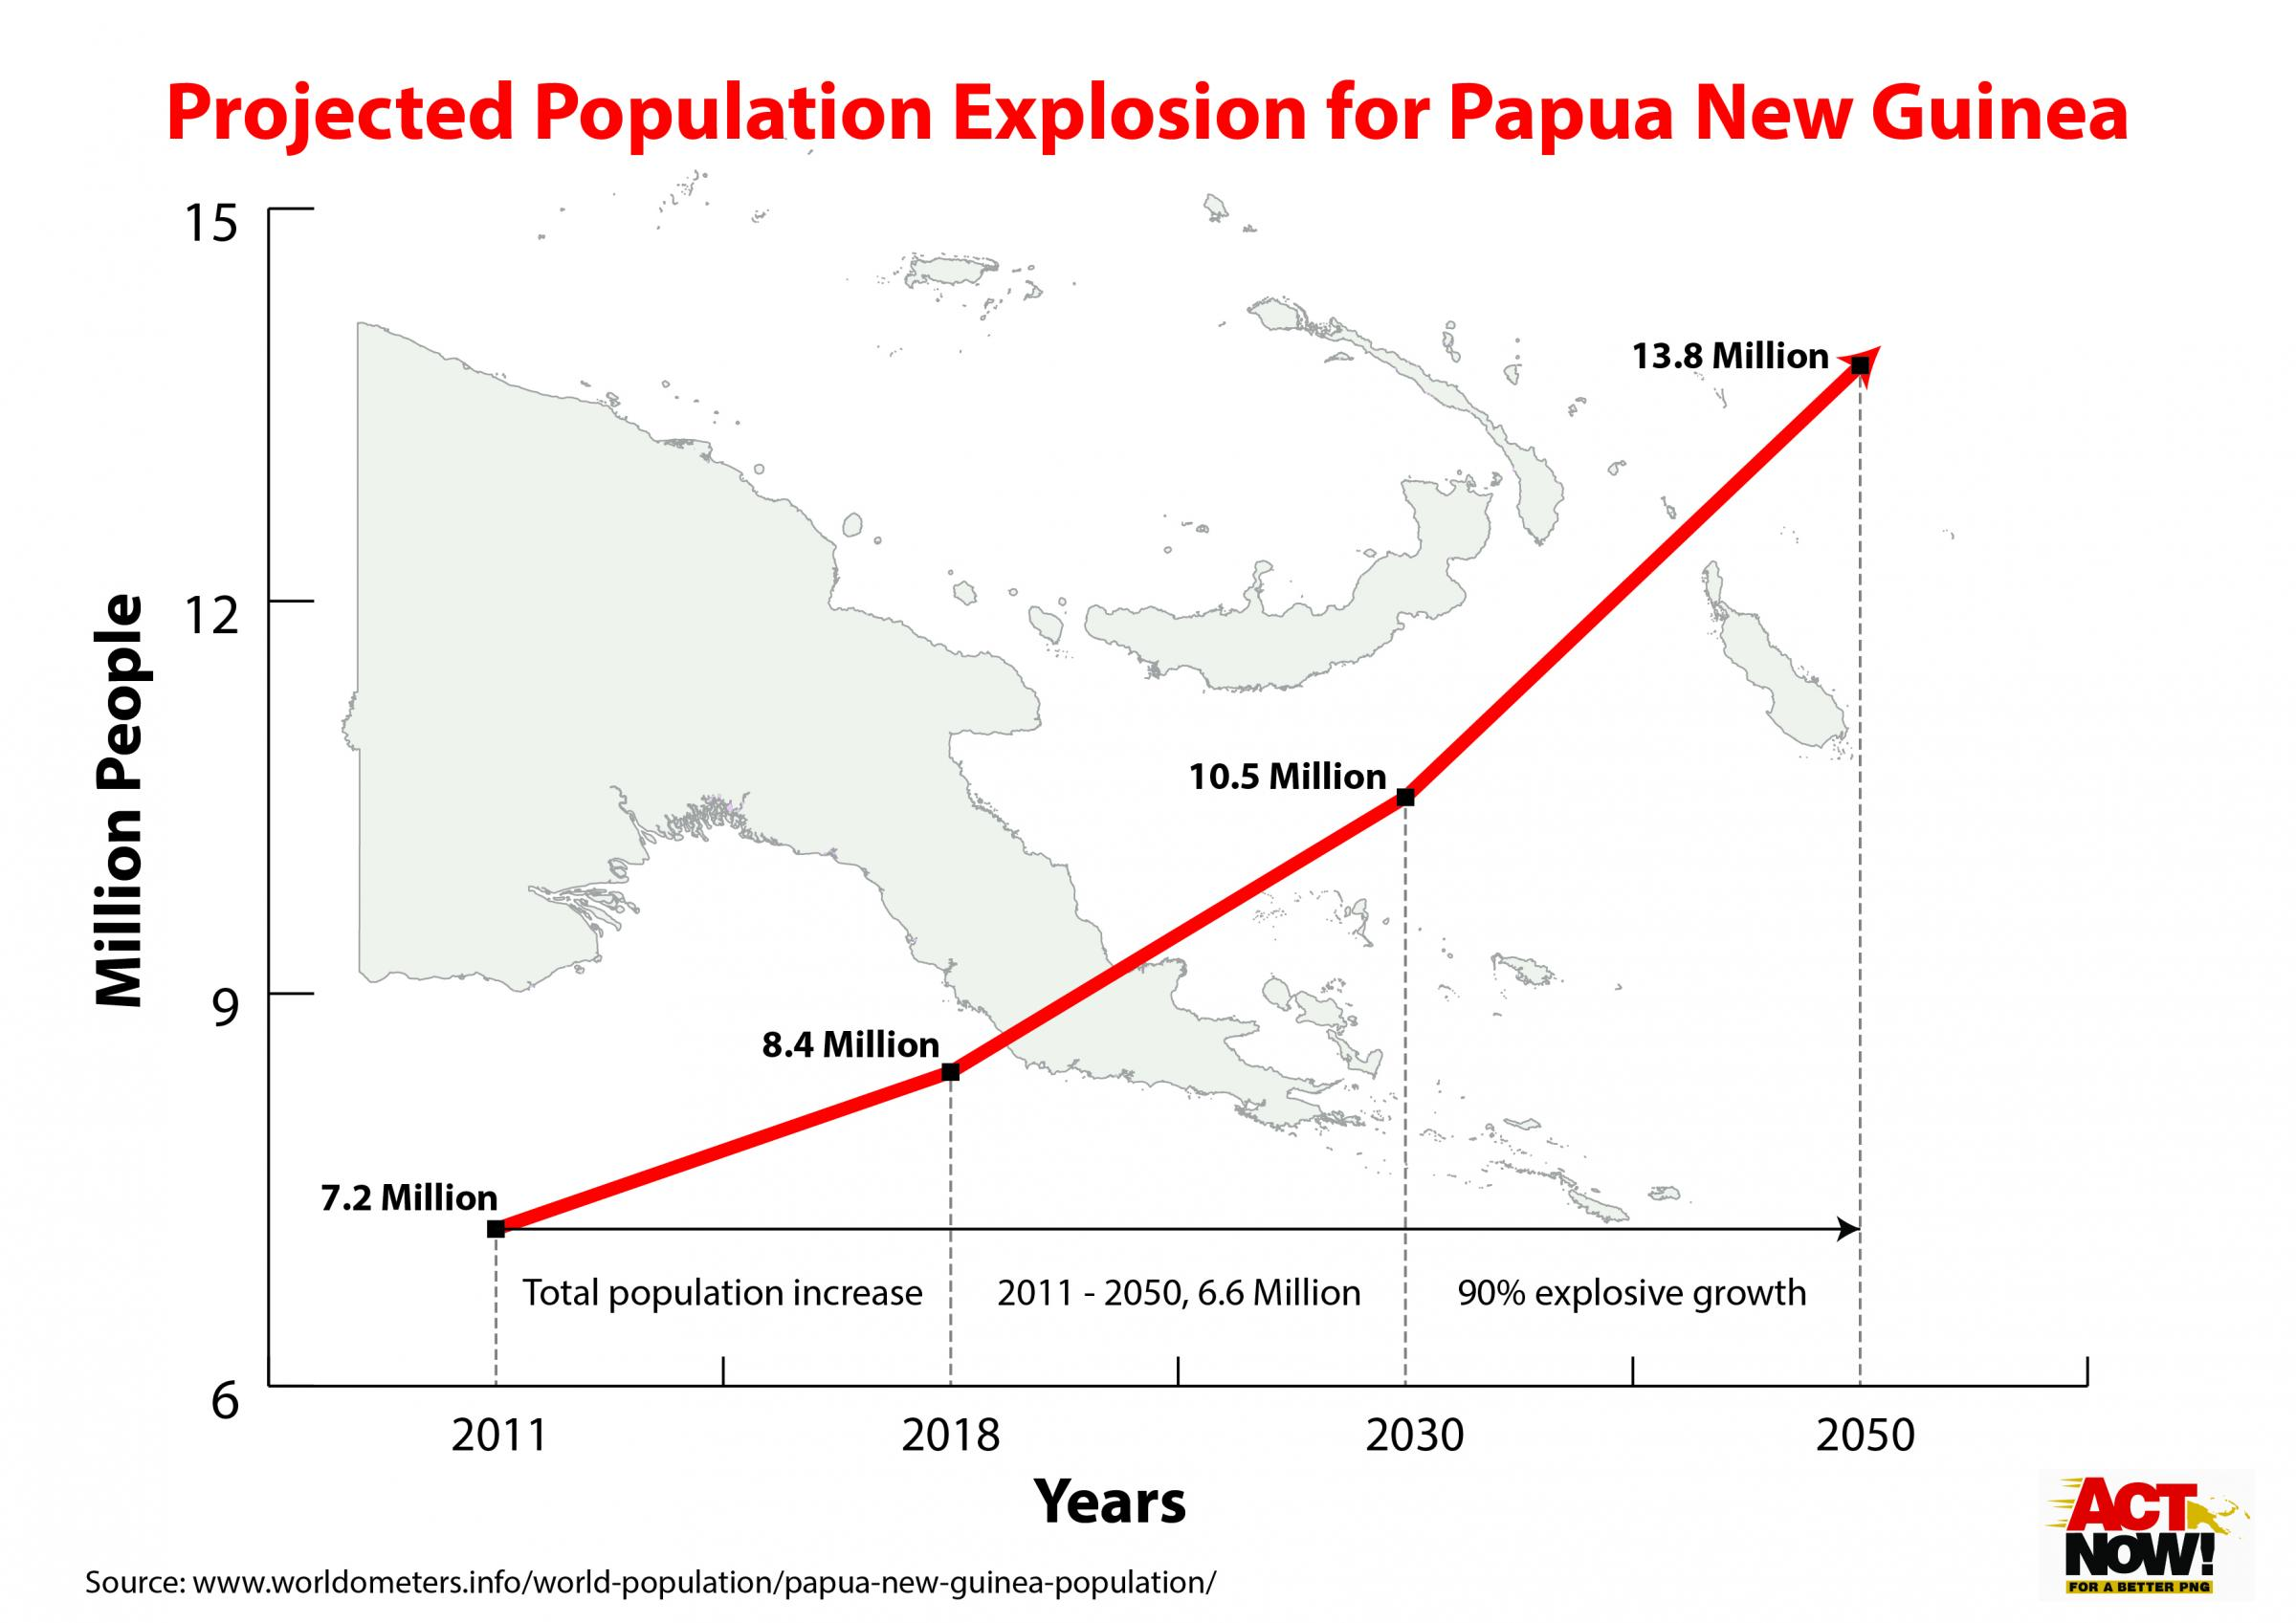 Population explosion makes protection of customary land vital.